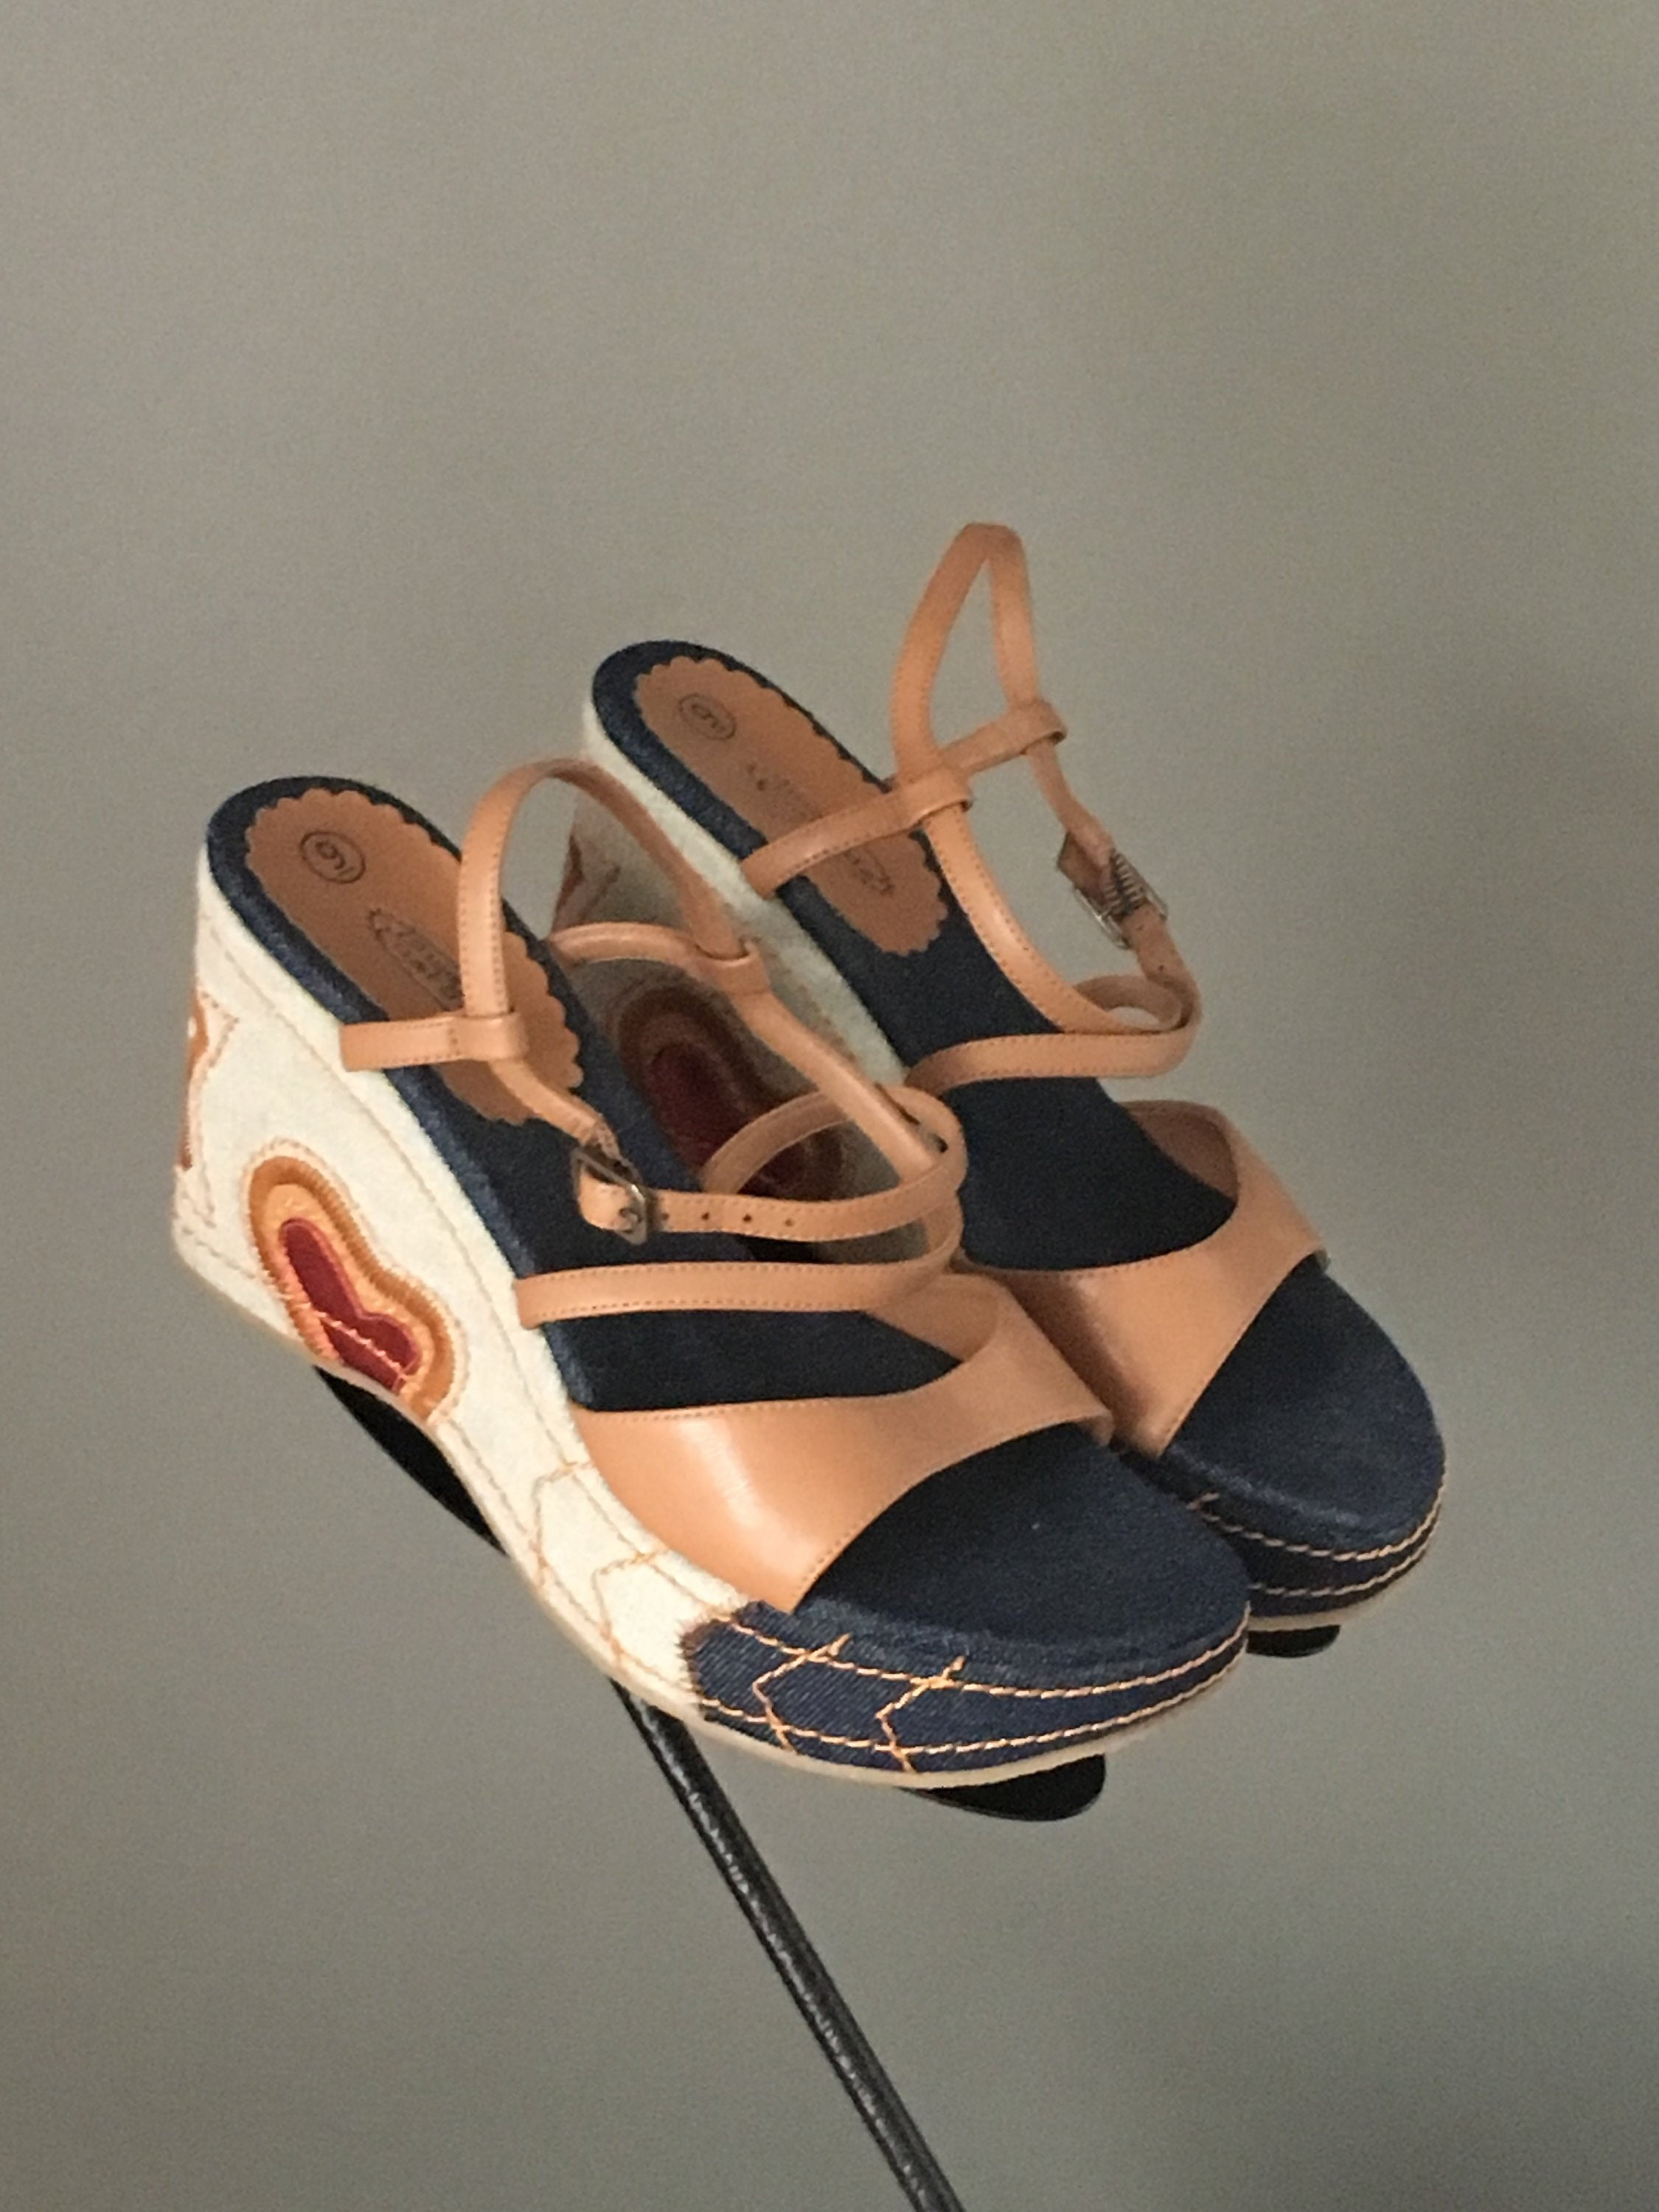 5a4916dc2b2197 Super Cute Vtg 90s Platform Sandal Shoe Hearts and Stars on Denim ...